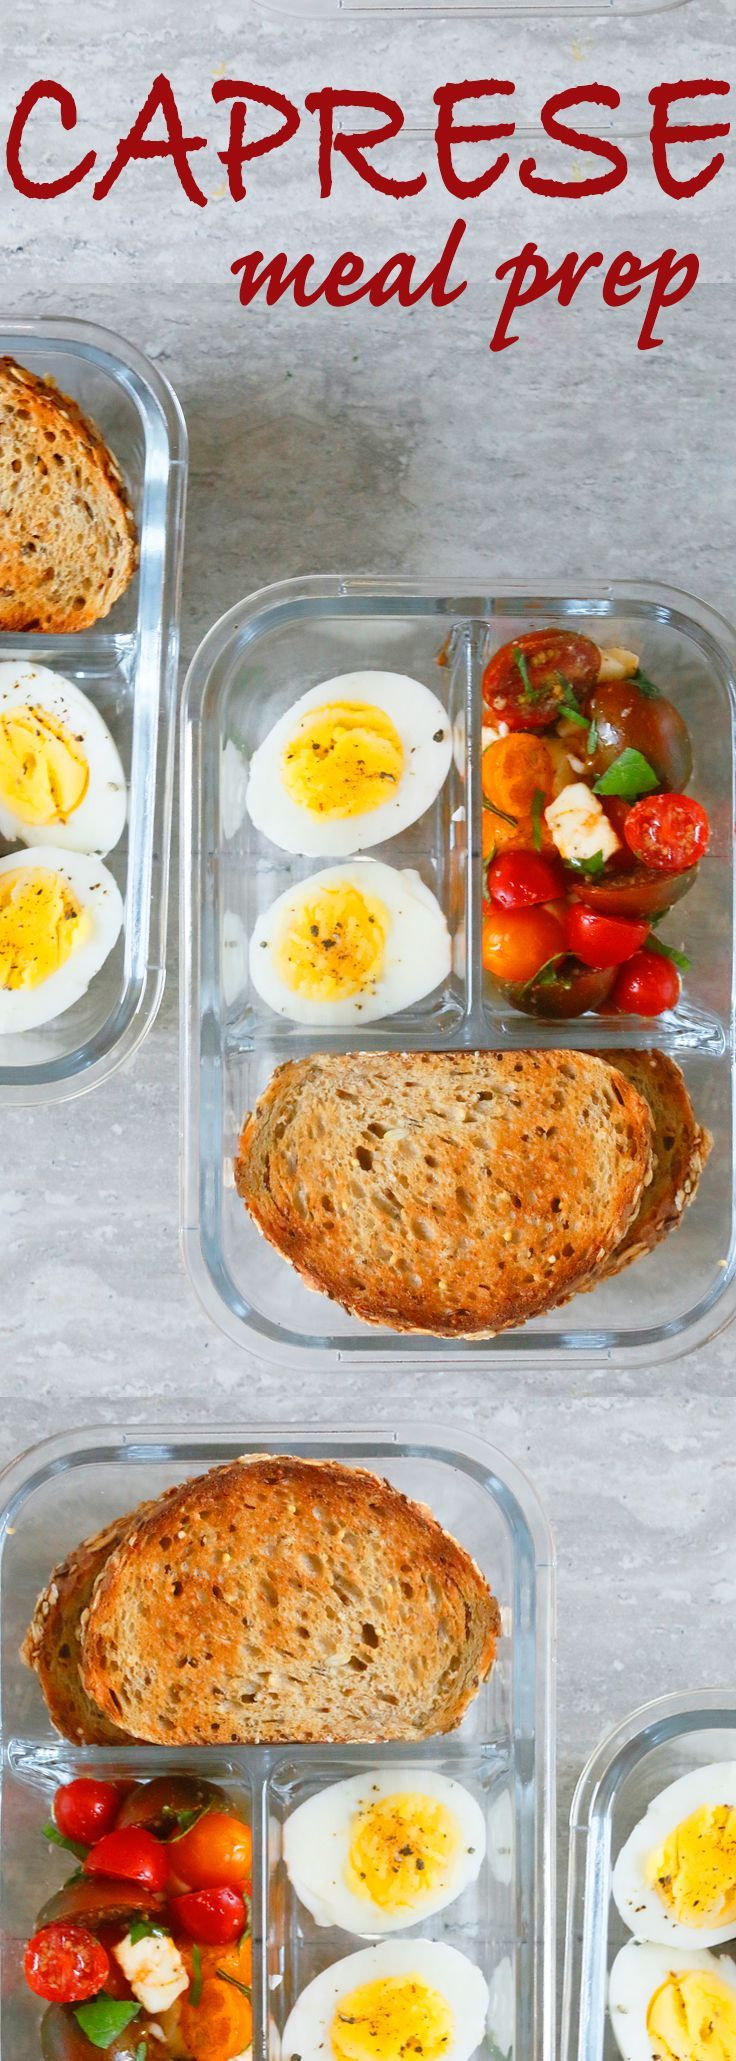 Caprese with Garlic Toast Lunch Box images